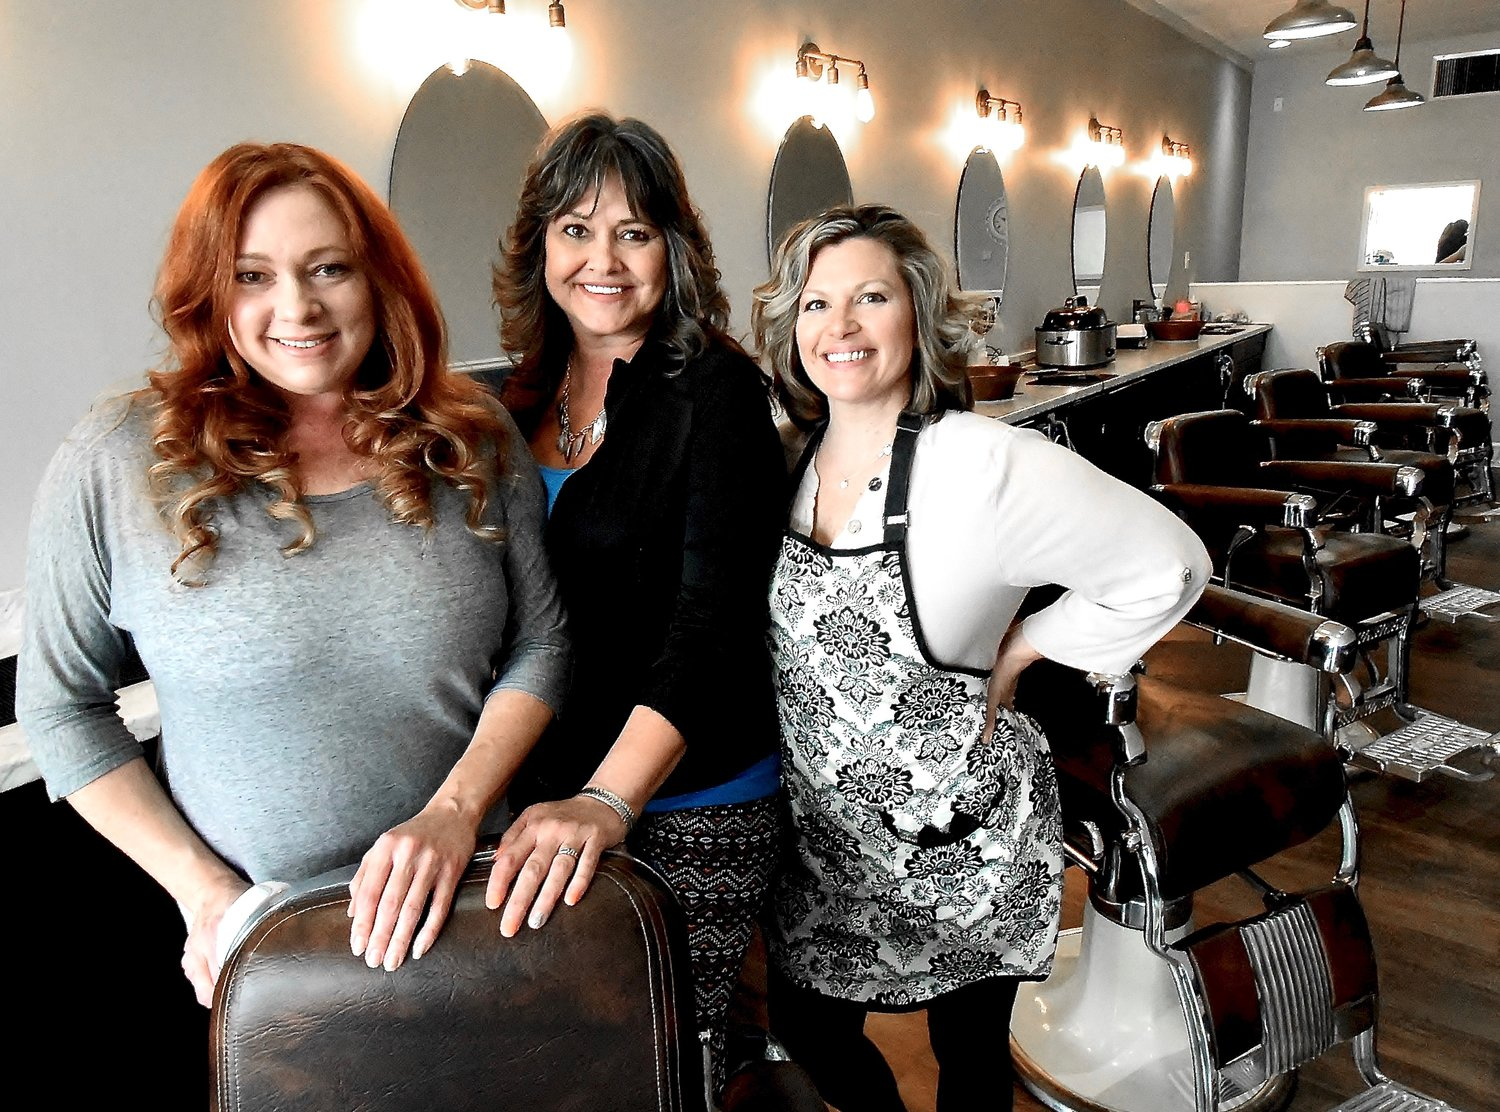 After being closed for nearly six weeks due to the coronavirus, Cartersville Barber Shop owner Jonette Roberson, left, was able to reopen her newly remodeled shop for business on May 5. Roberson and her two barbers, Verna White, center, and Angela Rhoden, have seen a steady stream of clients since reopening. The shop is in the Cartersville Plaza at 234 N. Dixie Ave.